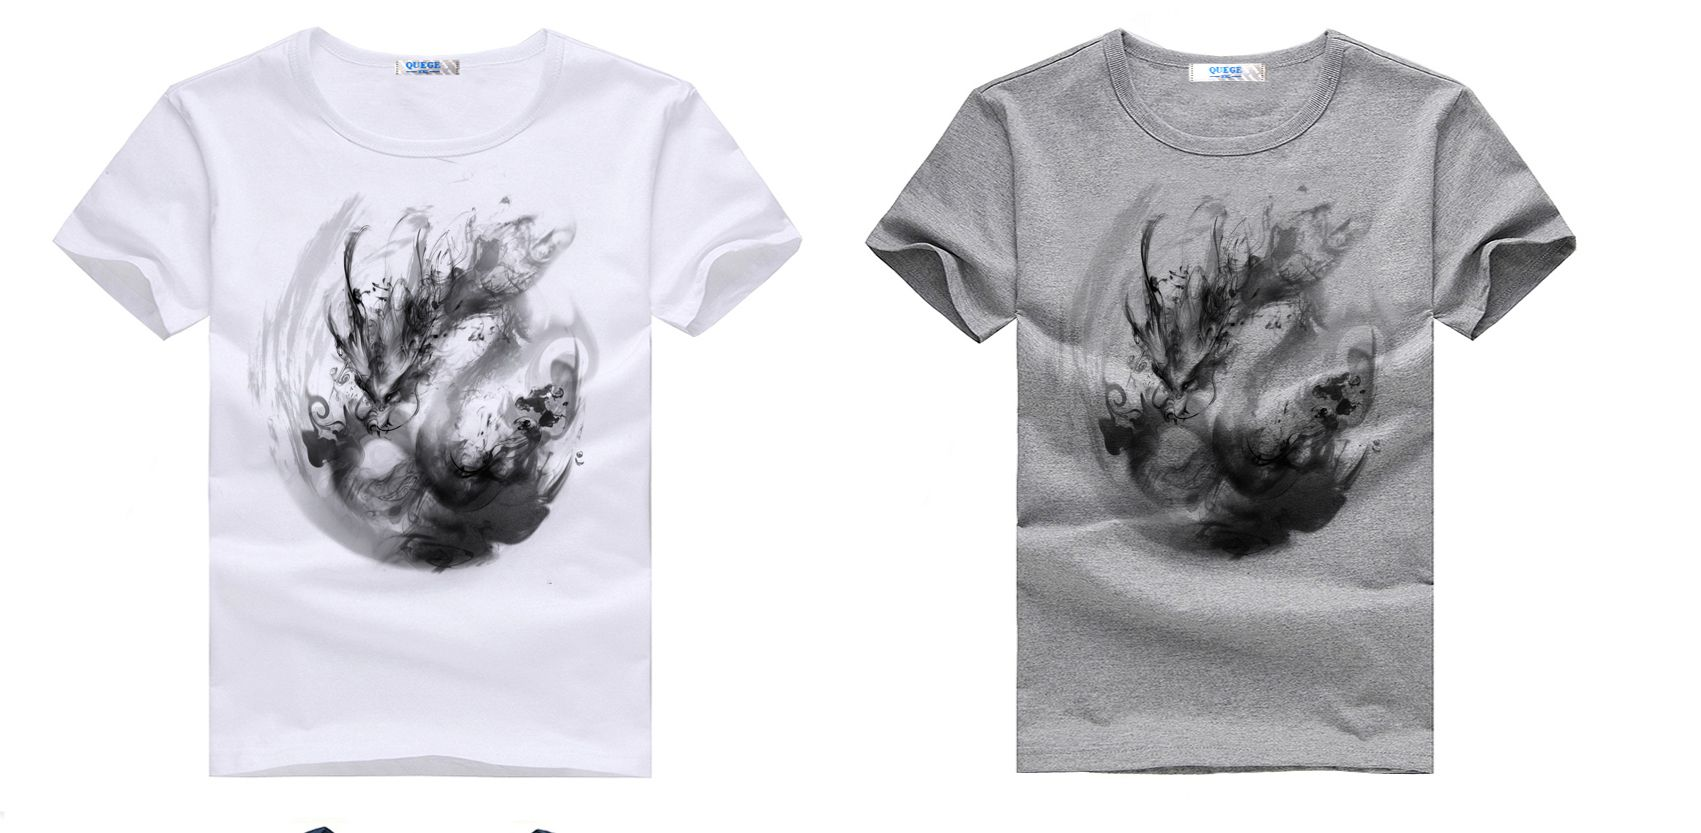 this print is the dragon ink image,welcome to visit our store good123321.myshopify.com